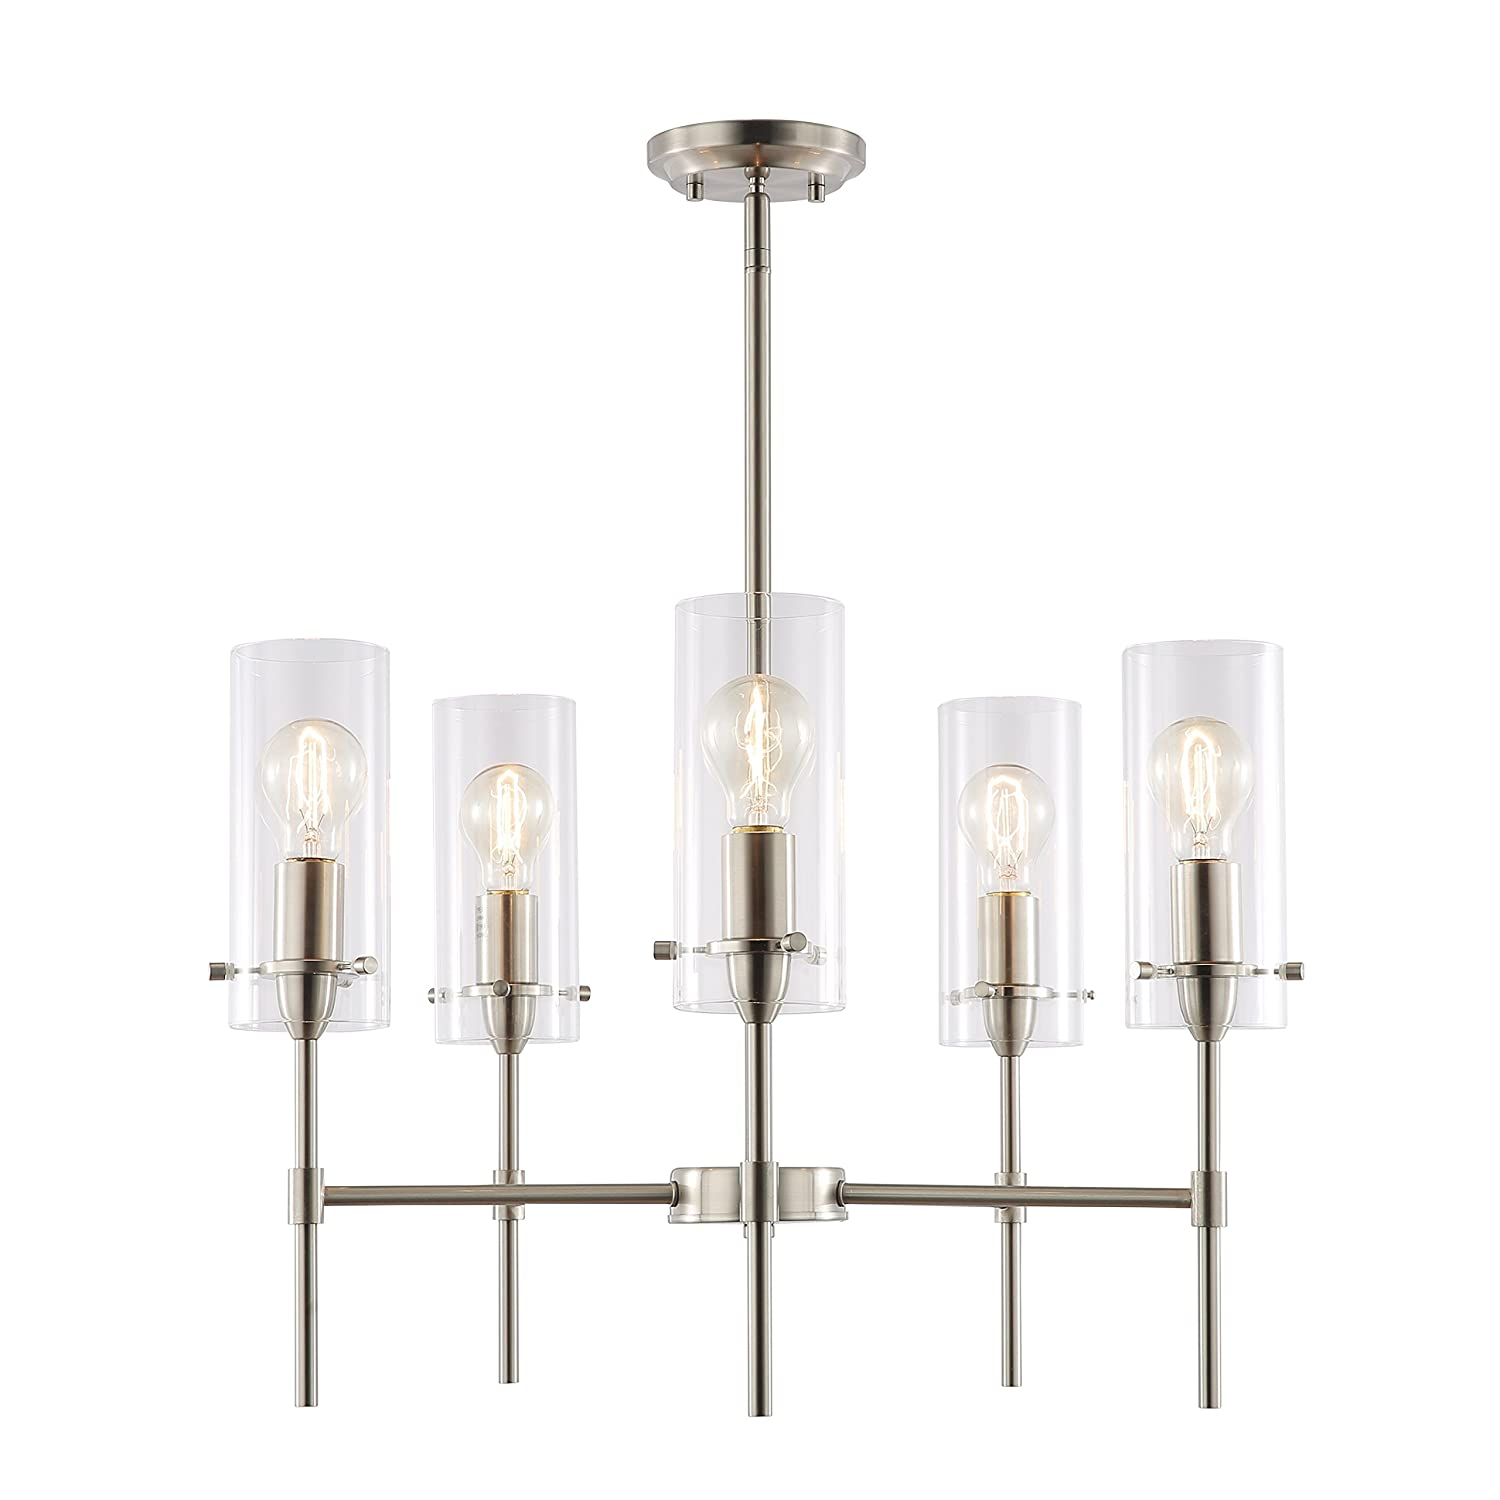 Light society montreal cylindrical 5 light chandelier pendant satin nickel with clear glass shades contemporary modern lighting fixture ls c239 sn cl